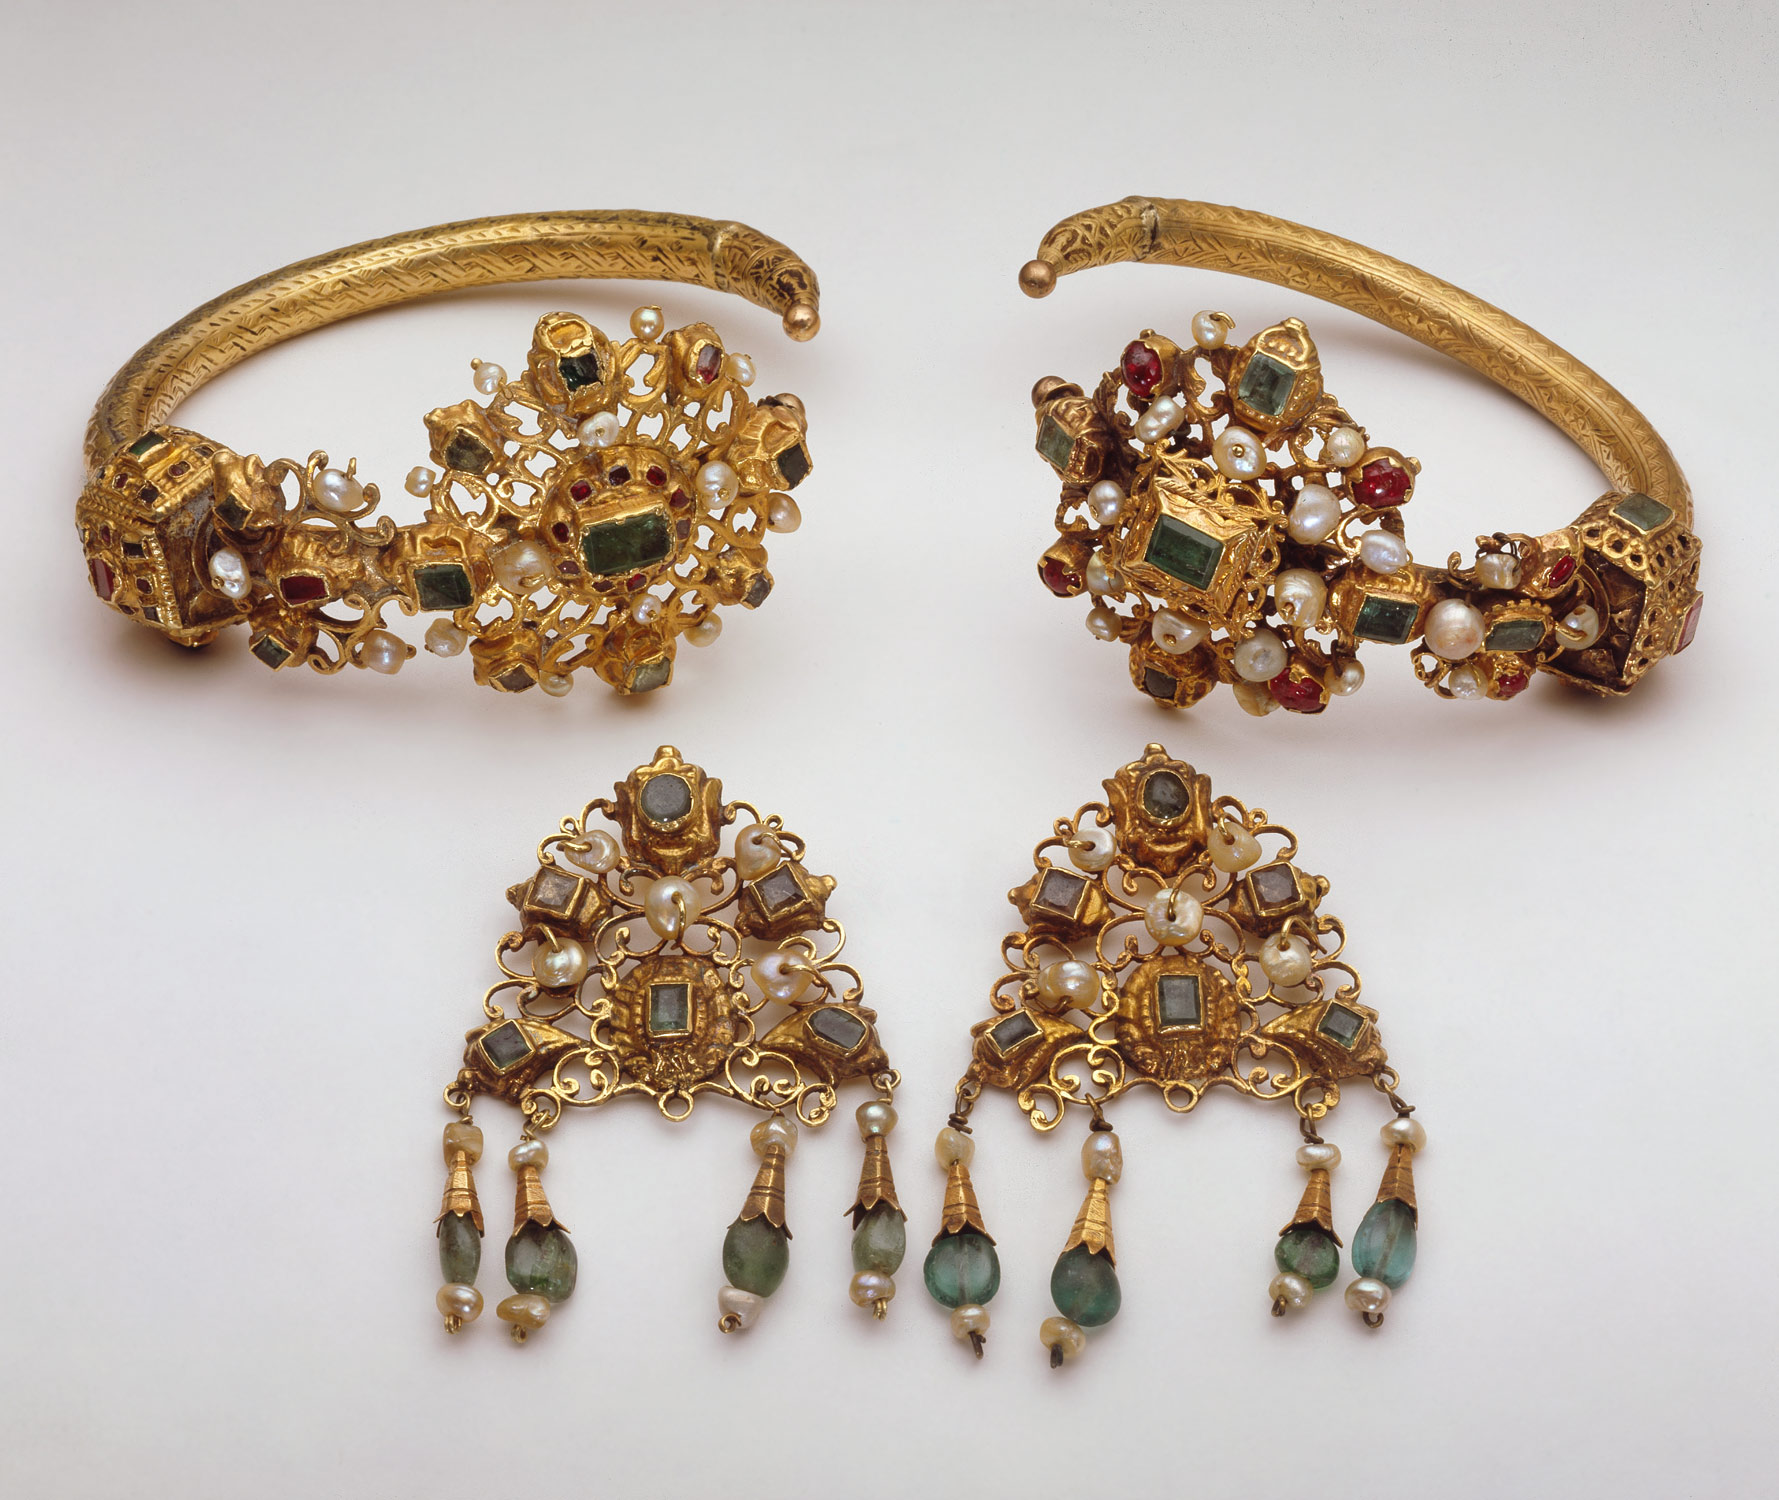 Gold Head Ornaments